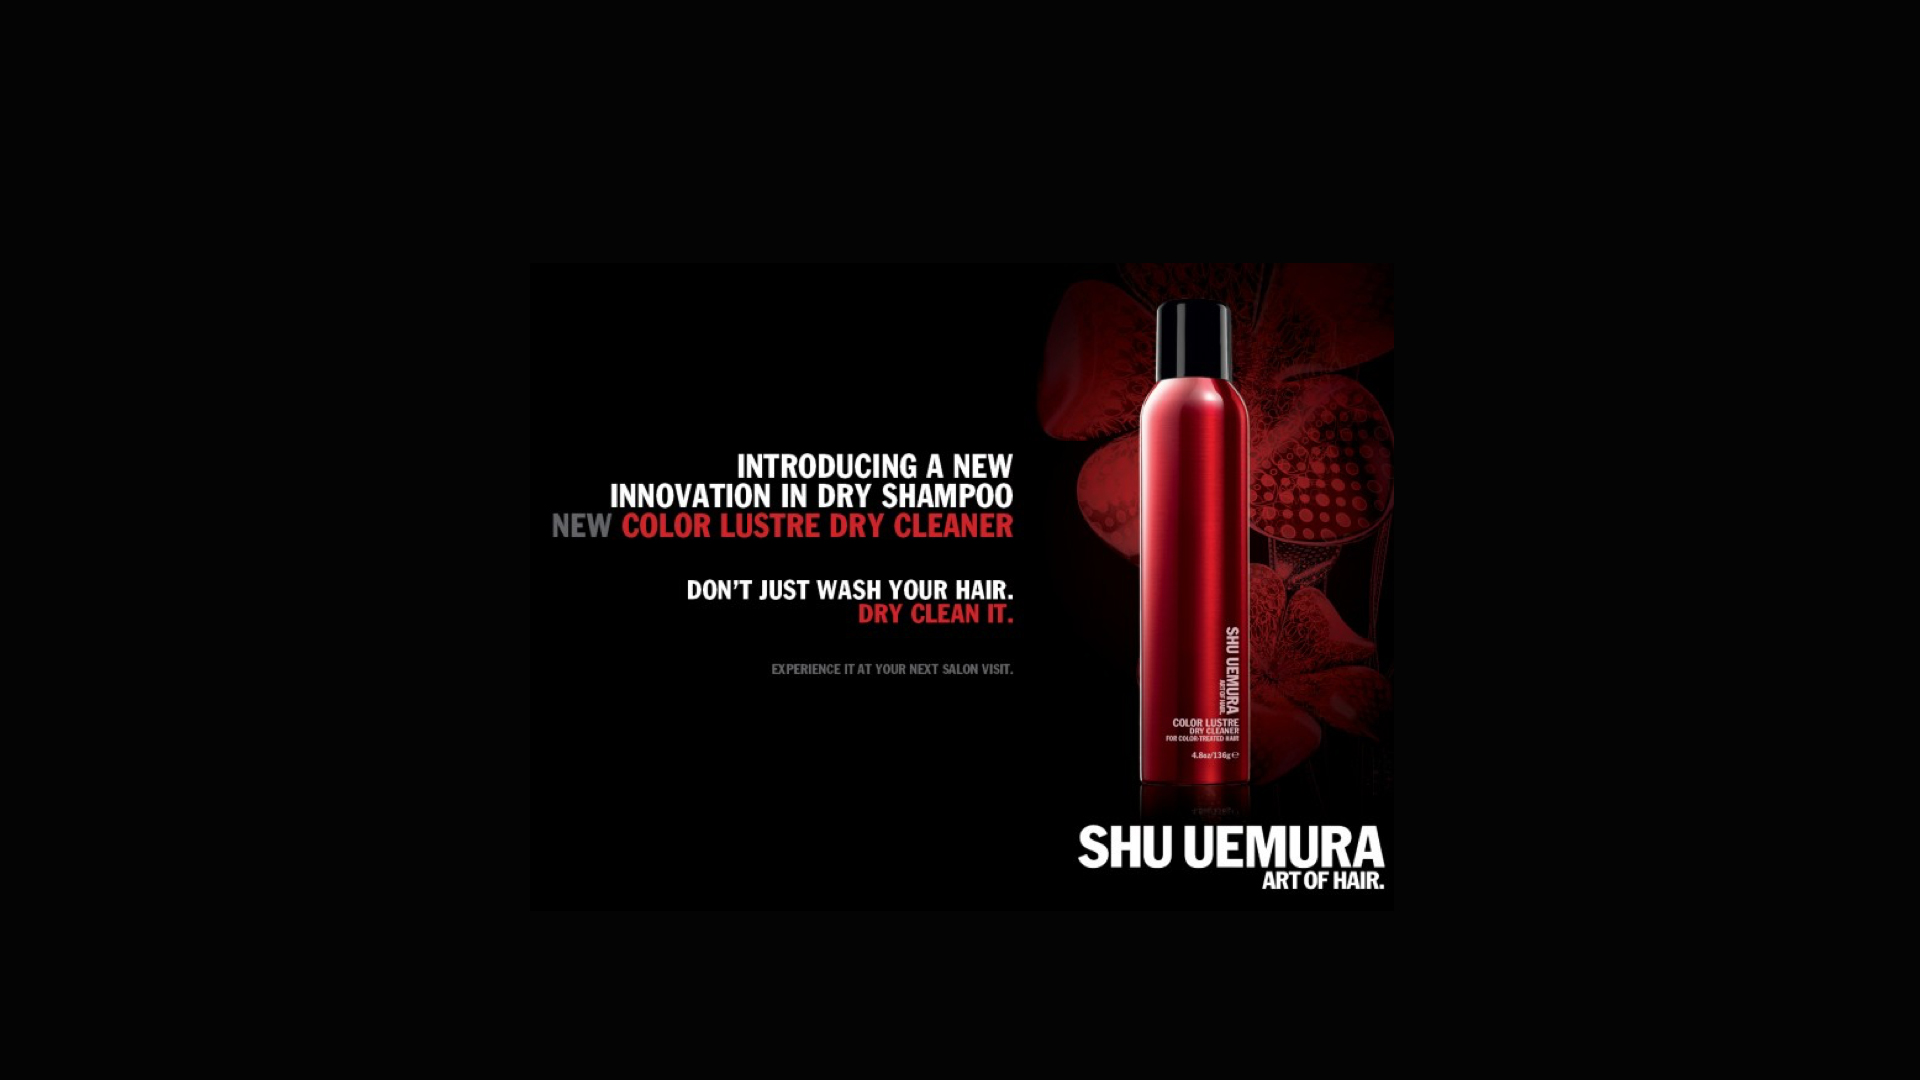 1 shu uemura color lustre dry cleaner 2 in 1 dry shampoo for Aalam salon prices